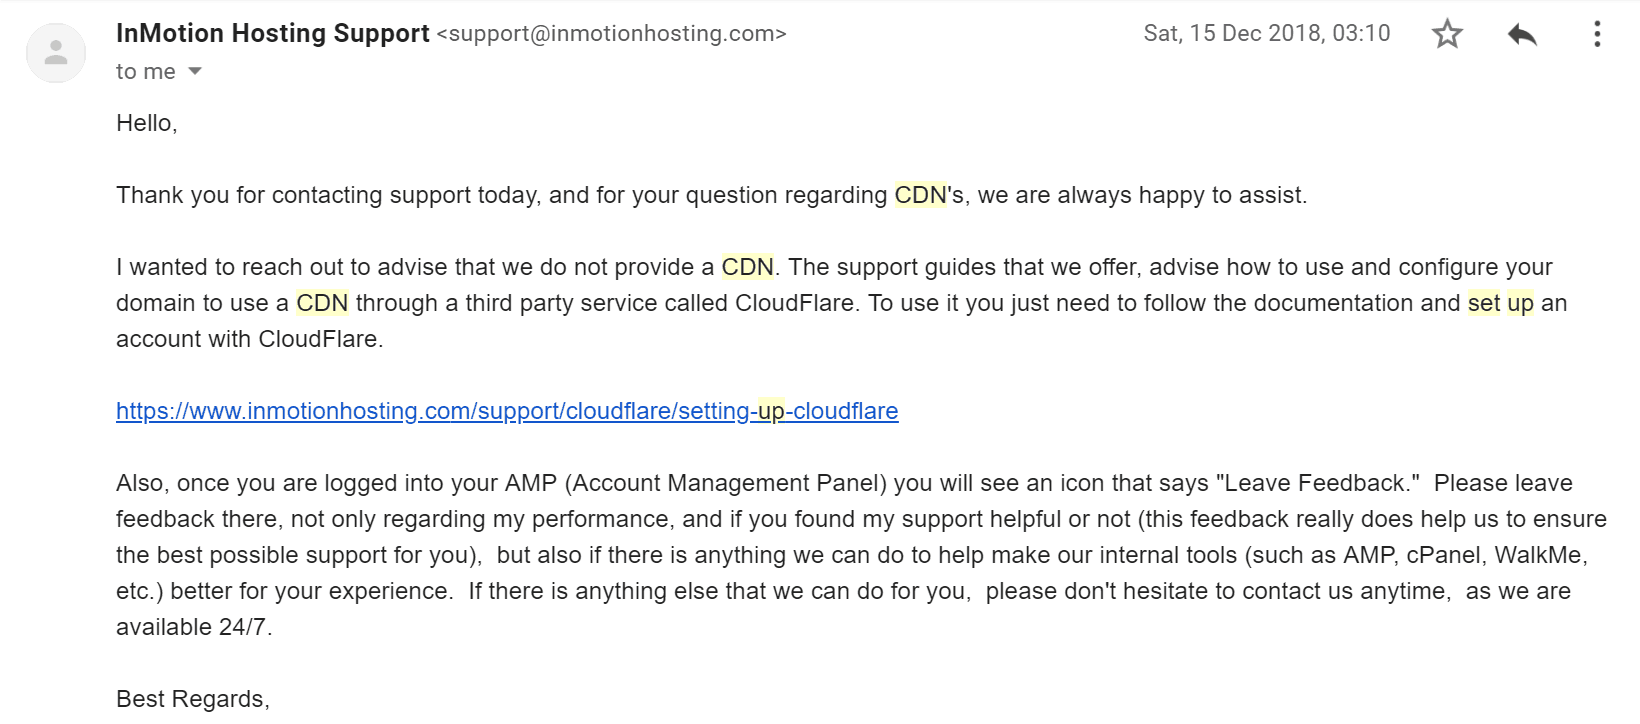 InMotion Hosting support email